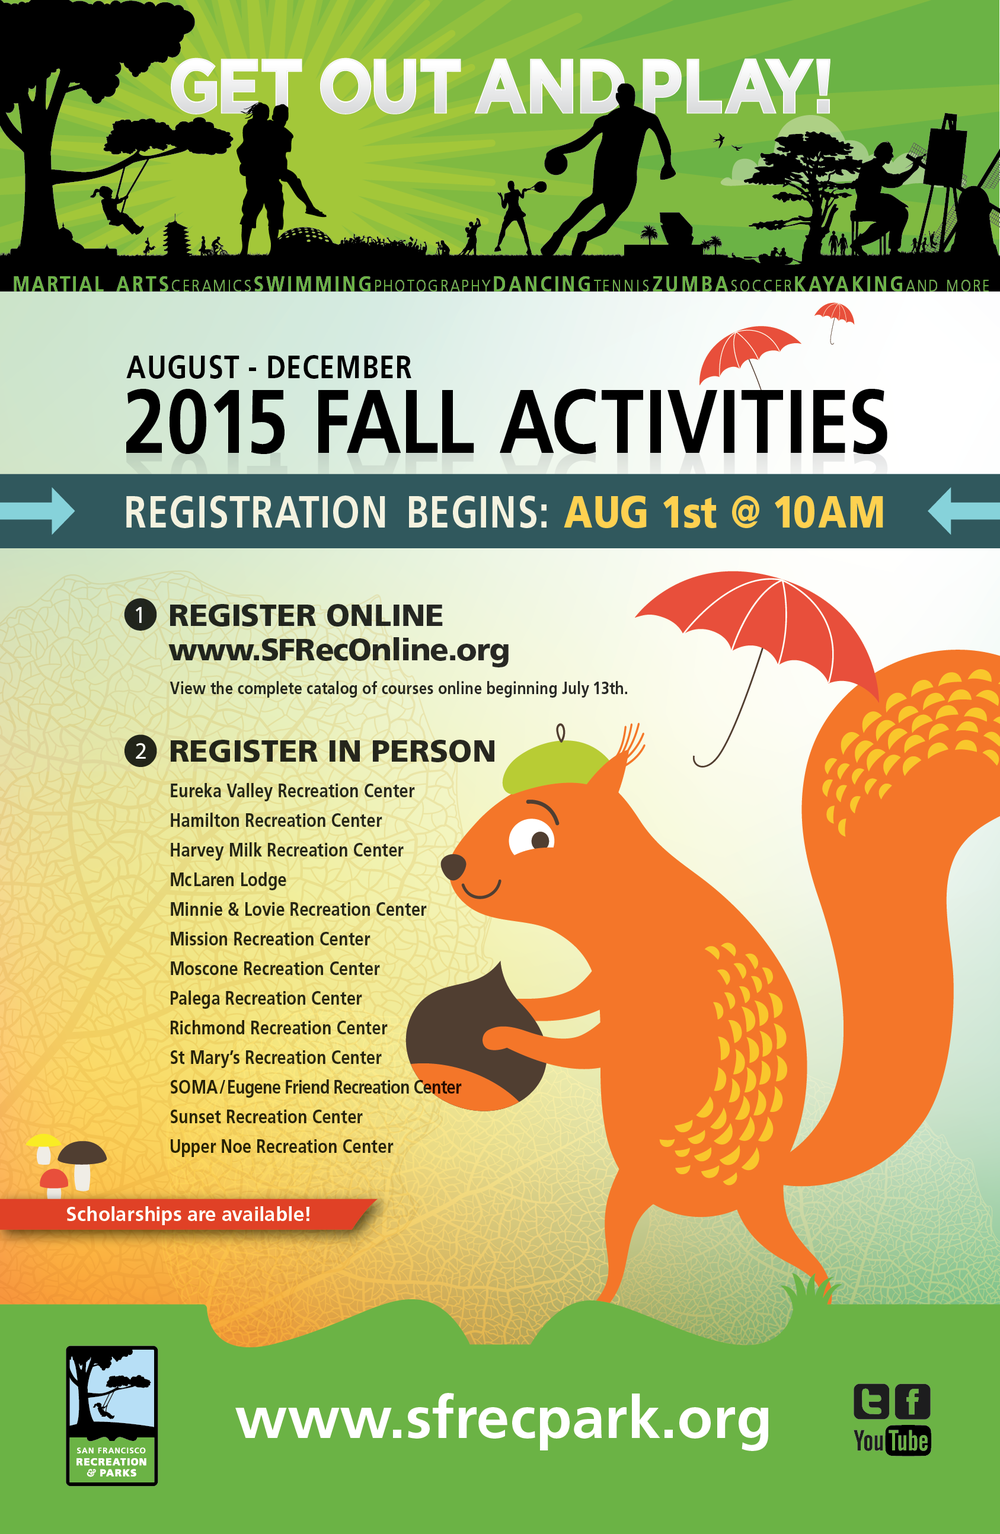 FALL_ACTIVITIES_POSTER_11x17_2015_2-01.png